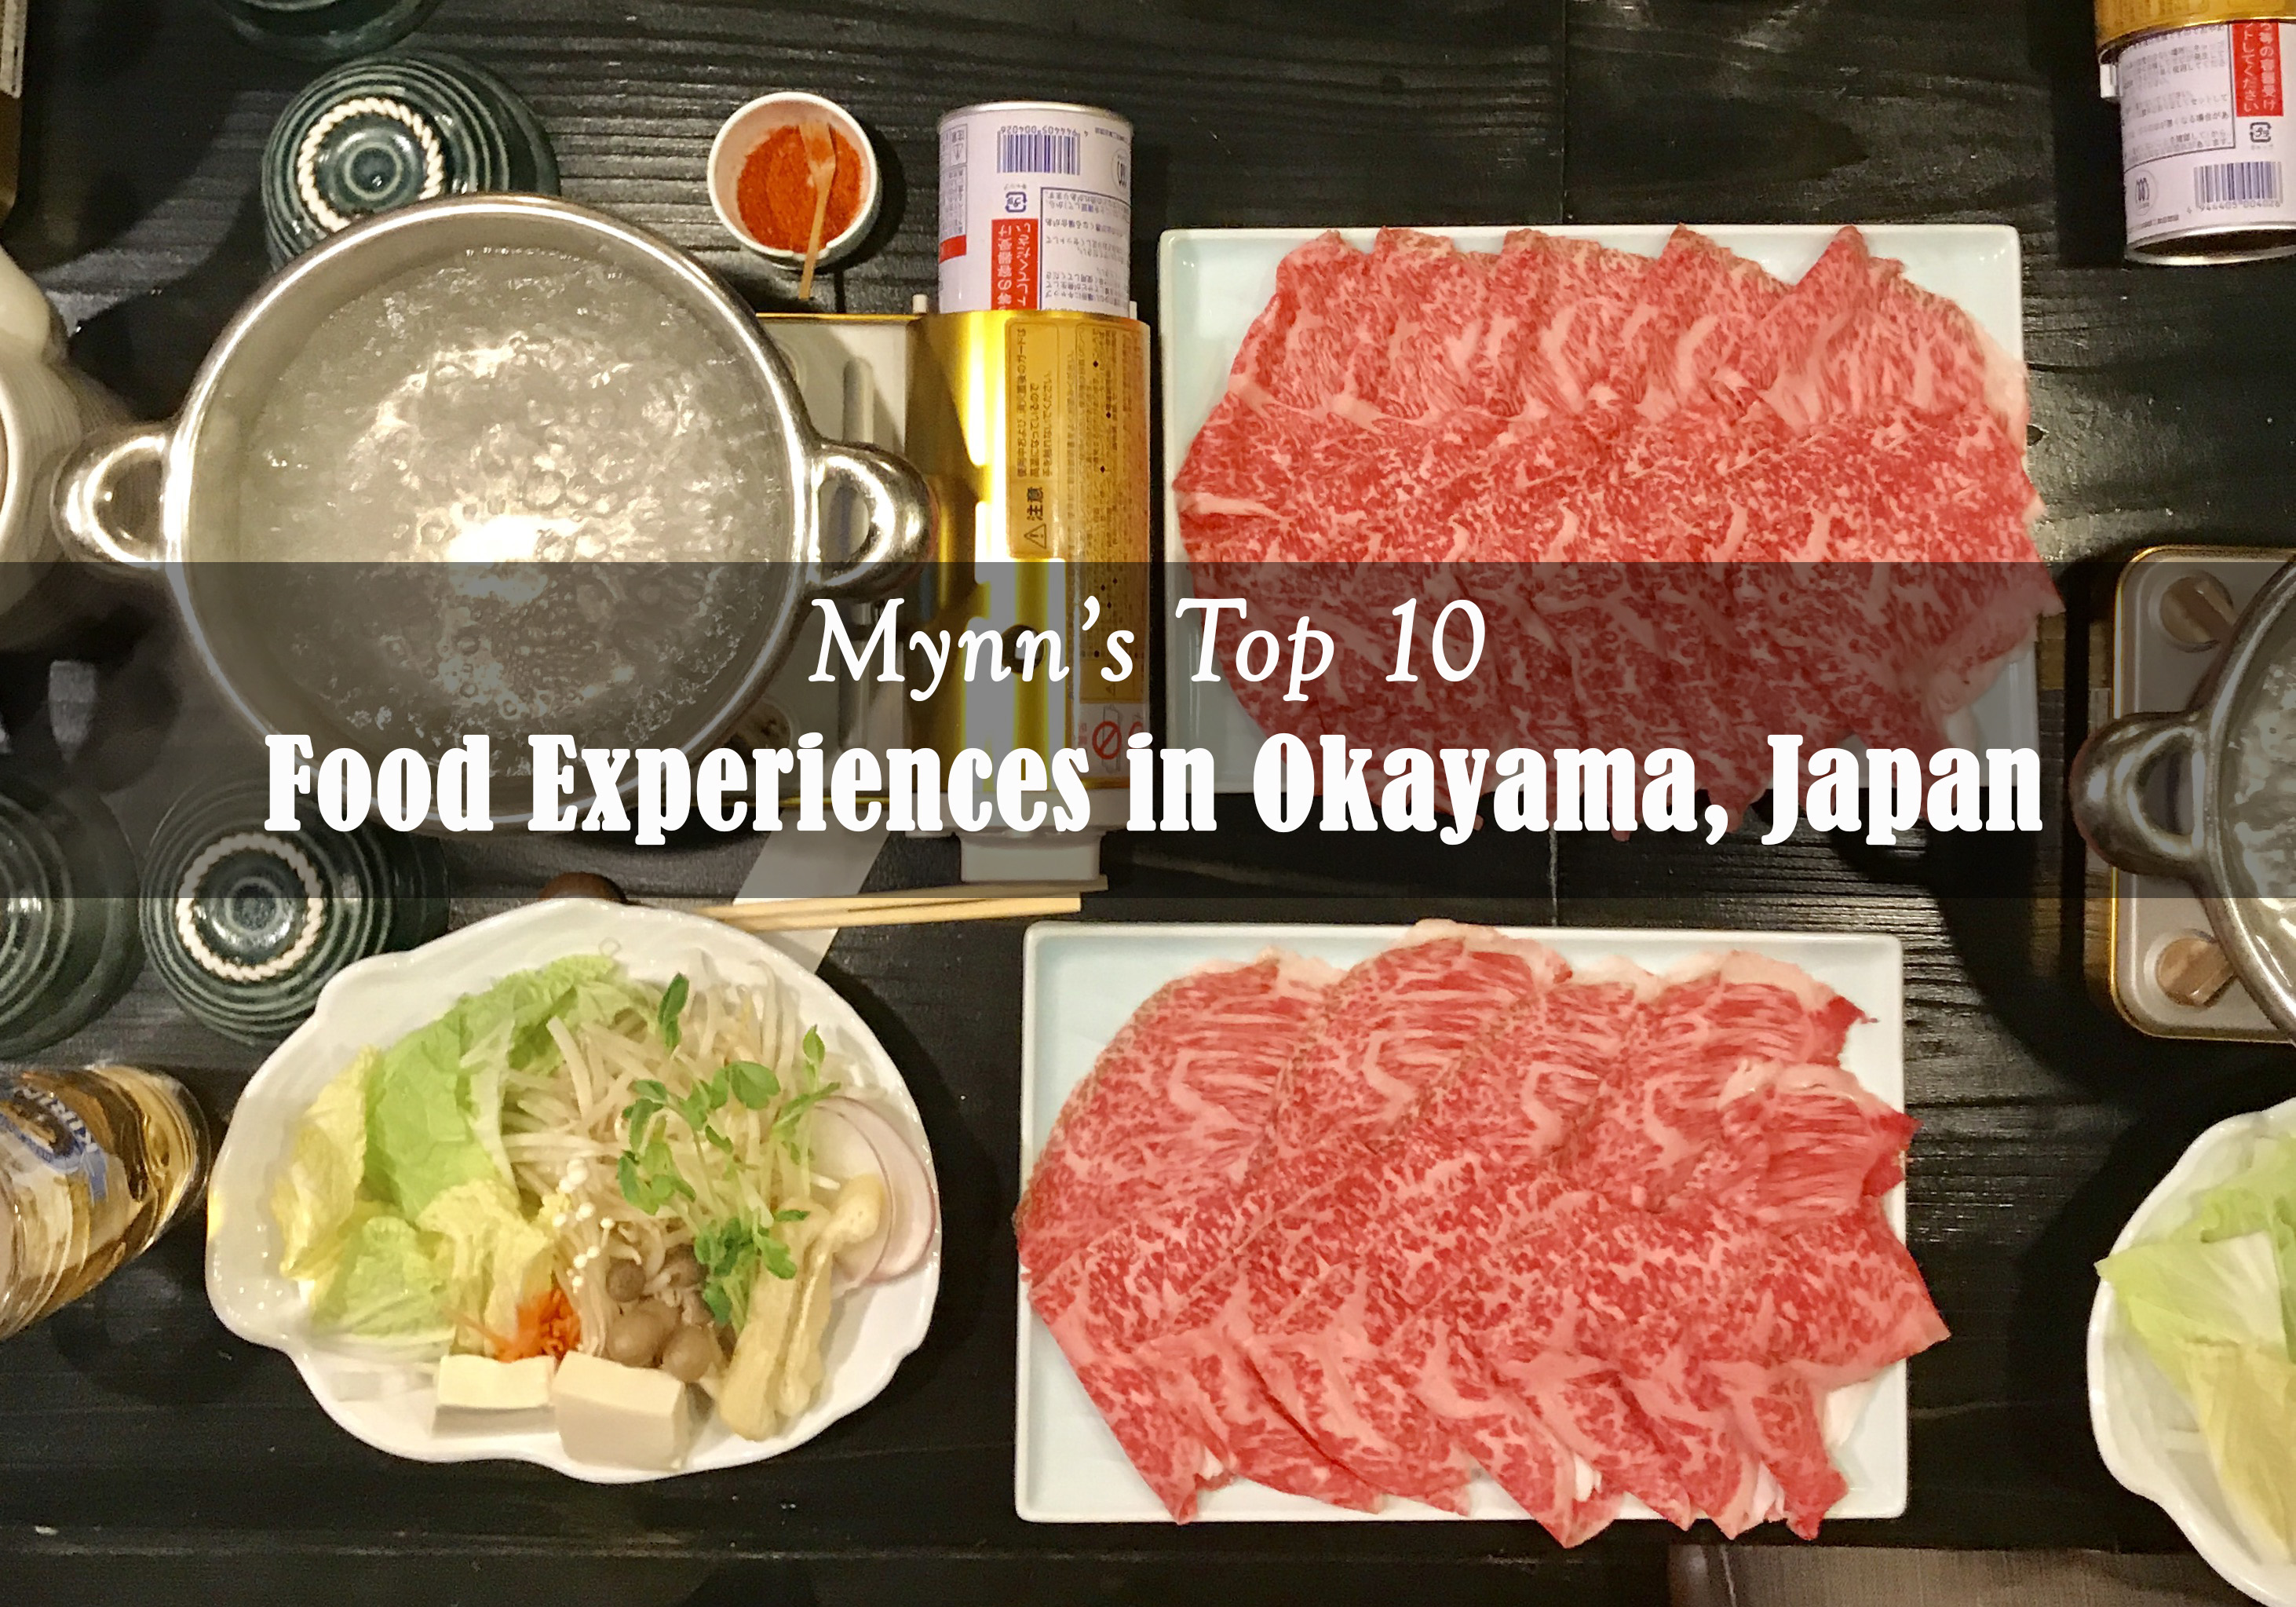 Mynn's Top 10 Food Experiences in Okayama, Japan